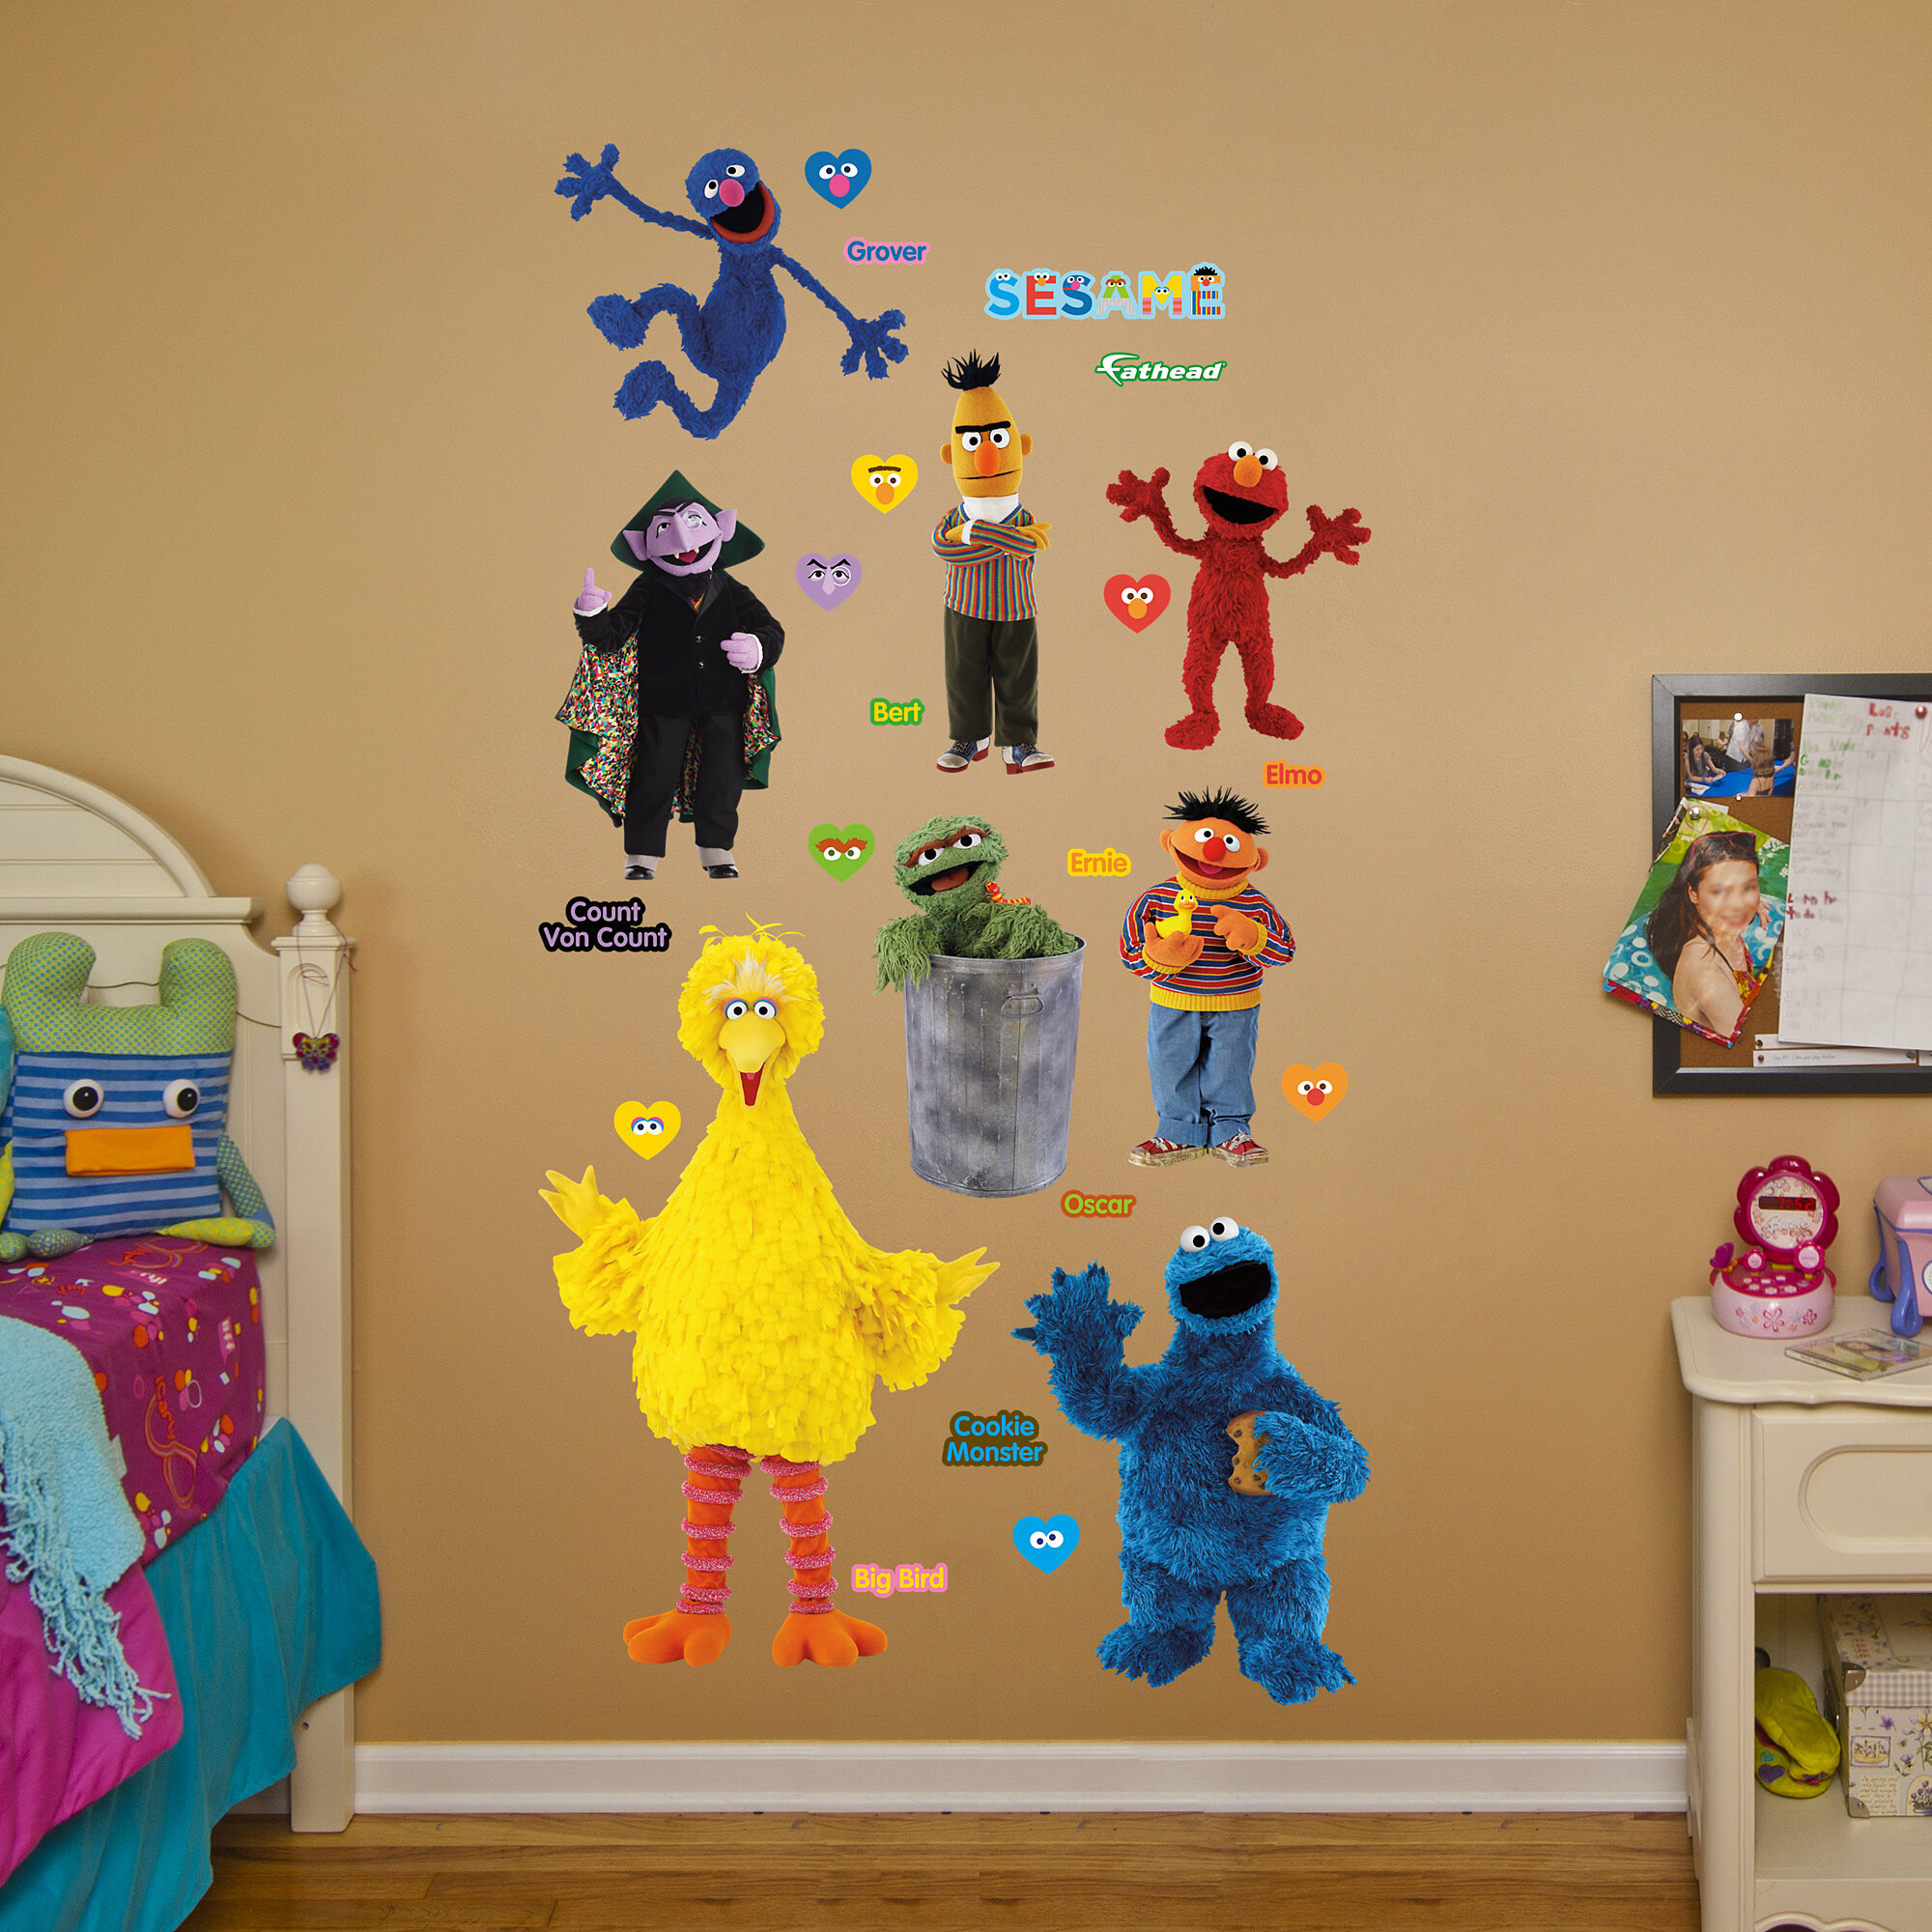 Fathead RealBig Sesame Street Wall Decal | Wayfair